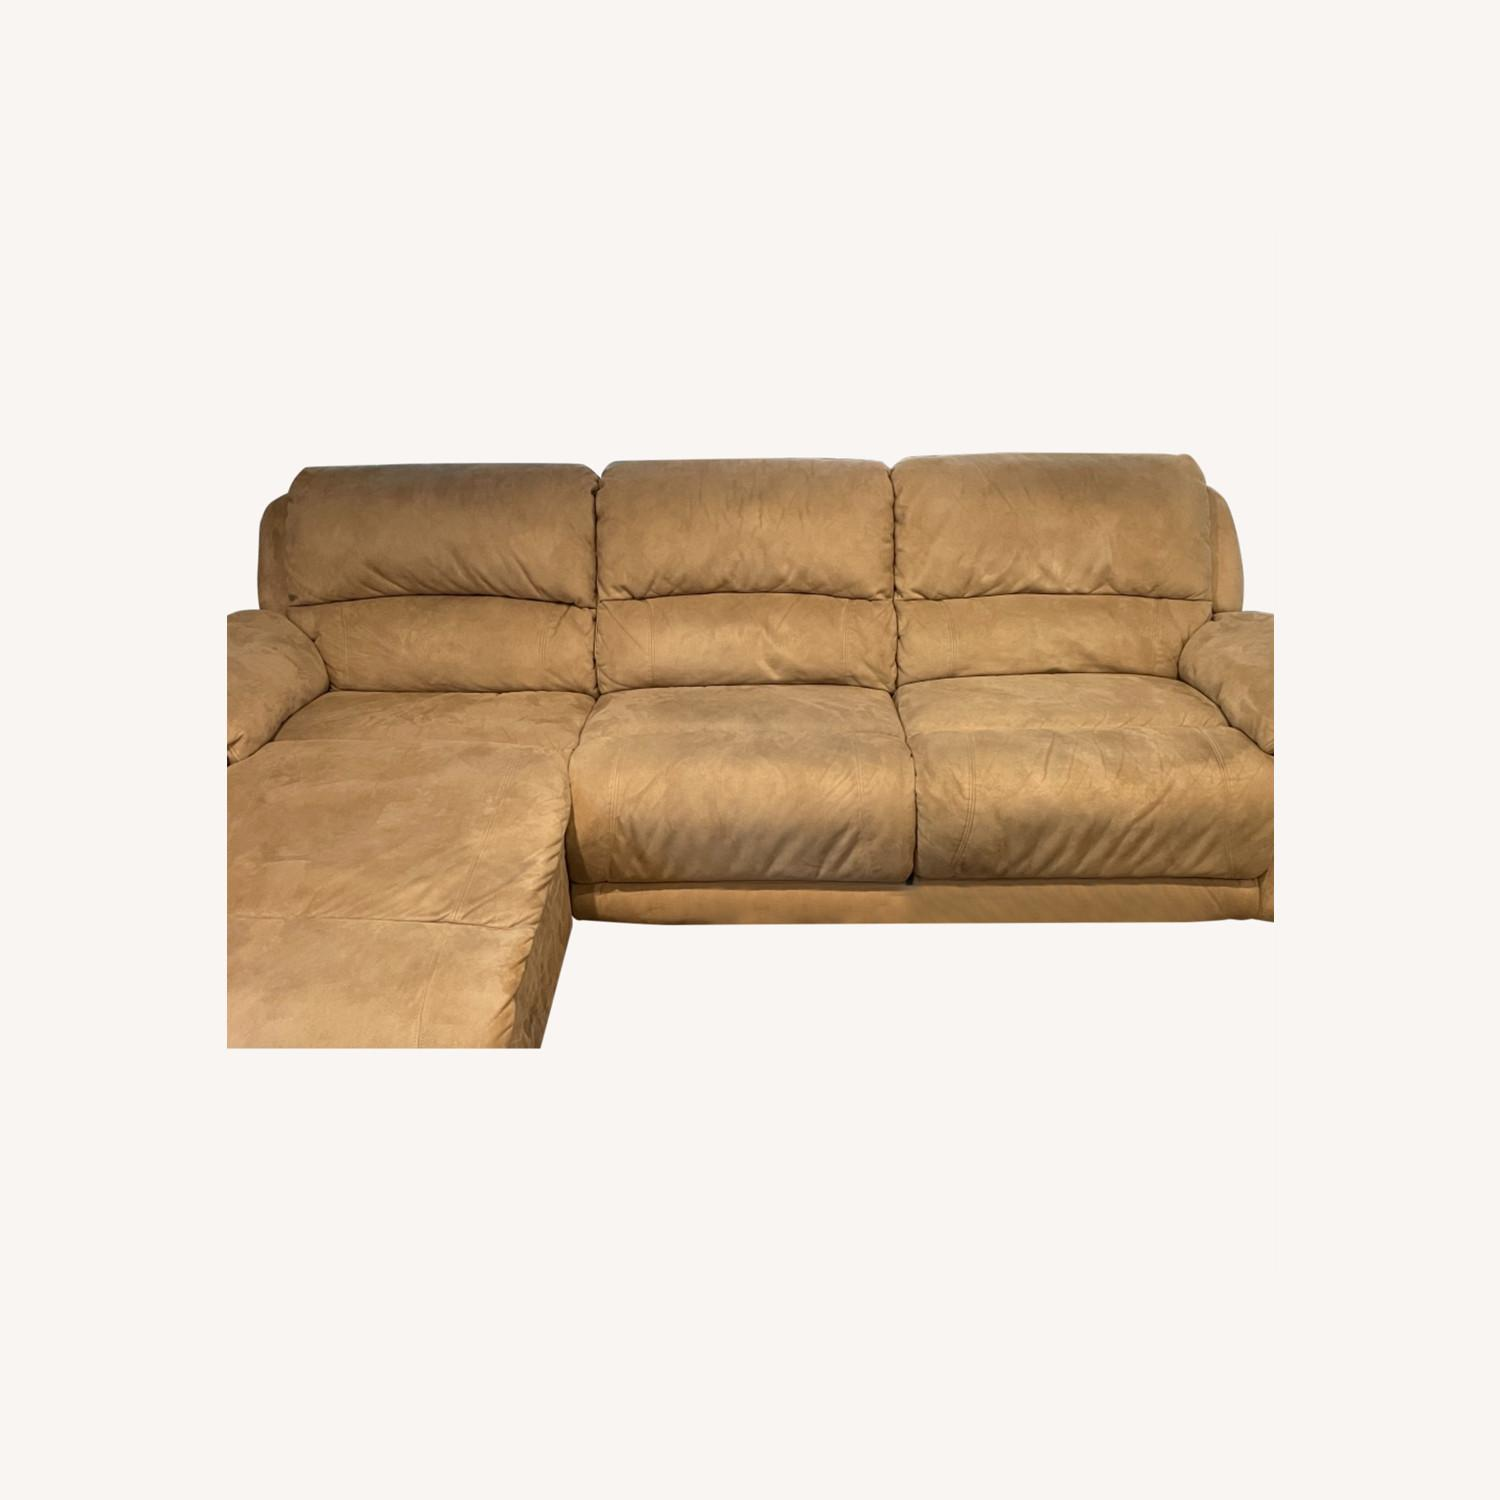 Raymour & Flanigan Reclining Sofa with Chaise - image-0